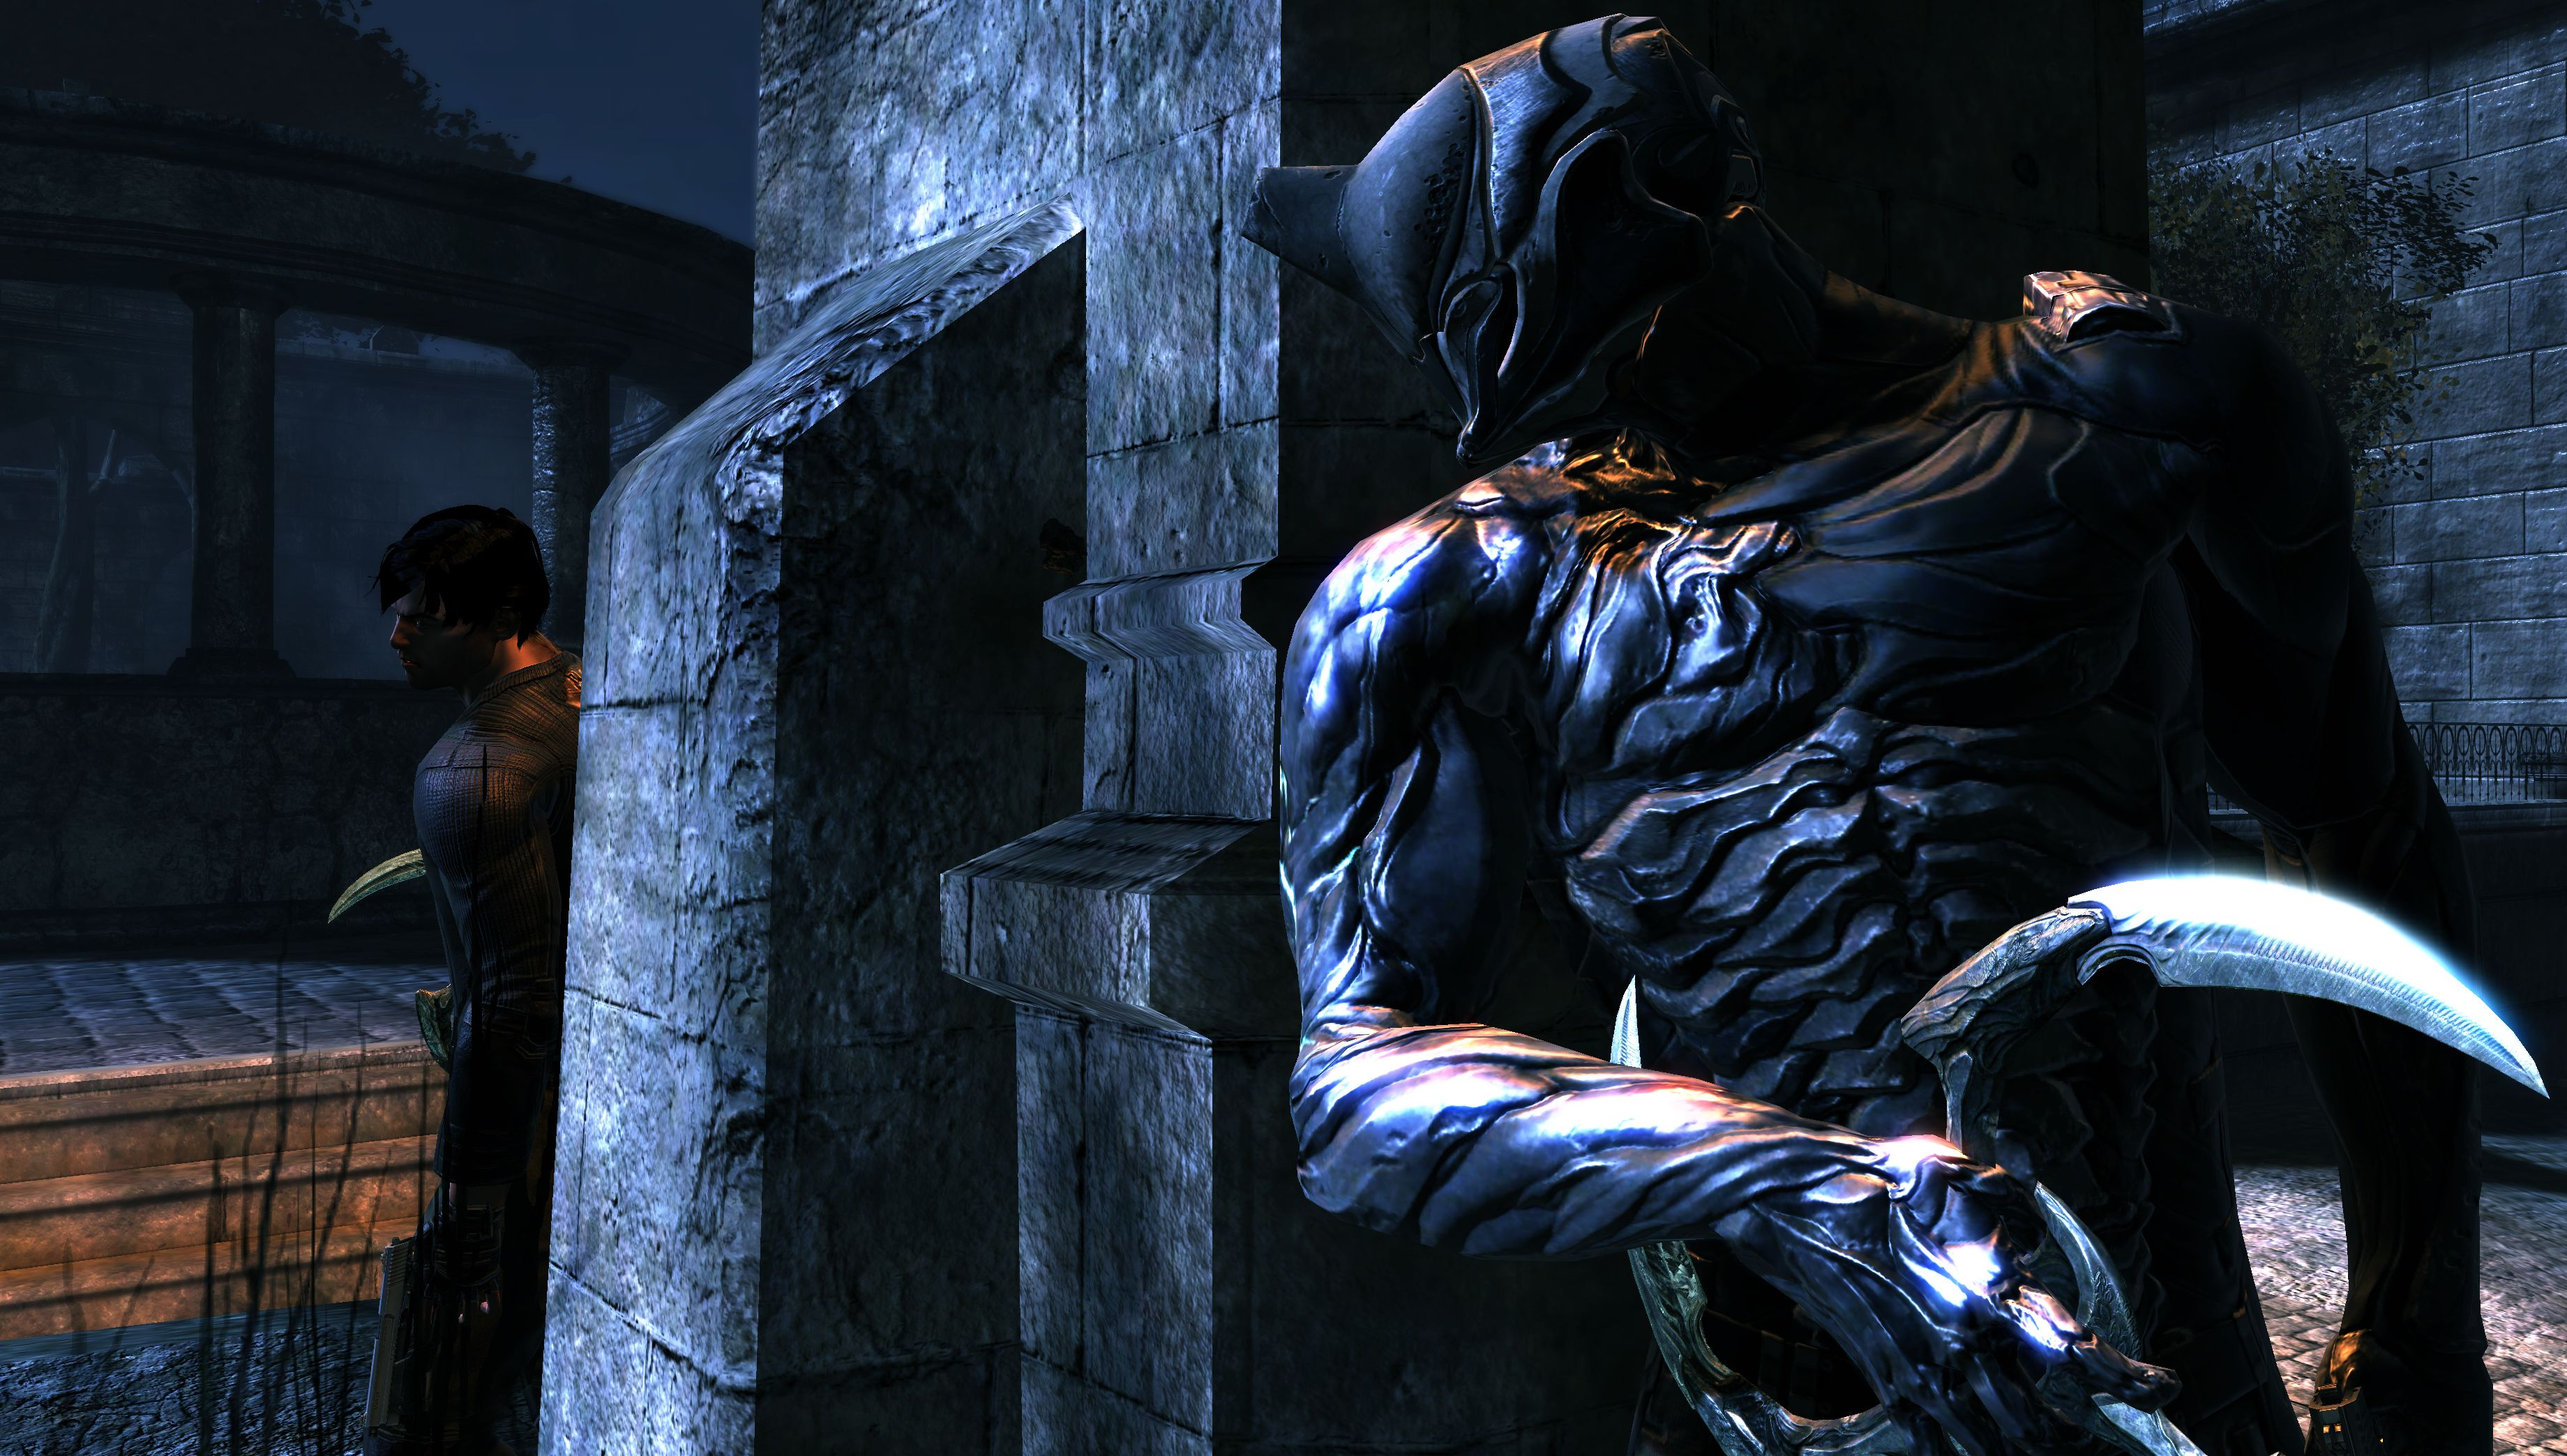 13 Dark Sector HD Wallpapers | Backgrounds - Wallpaper Abyss